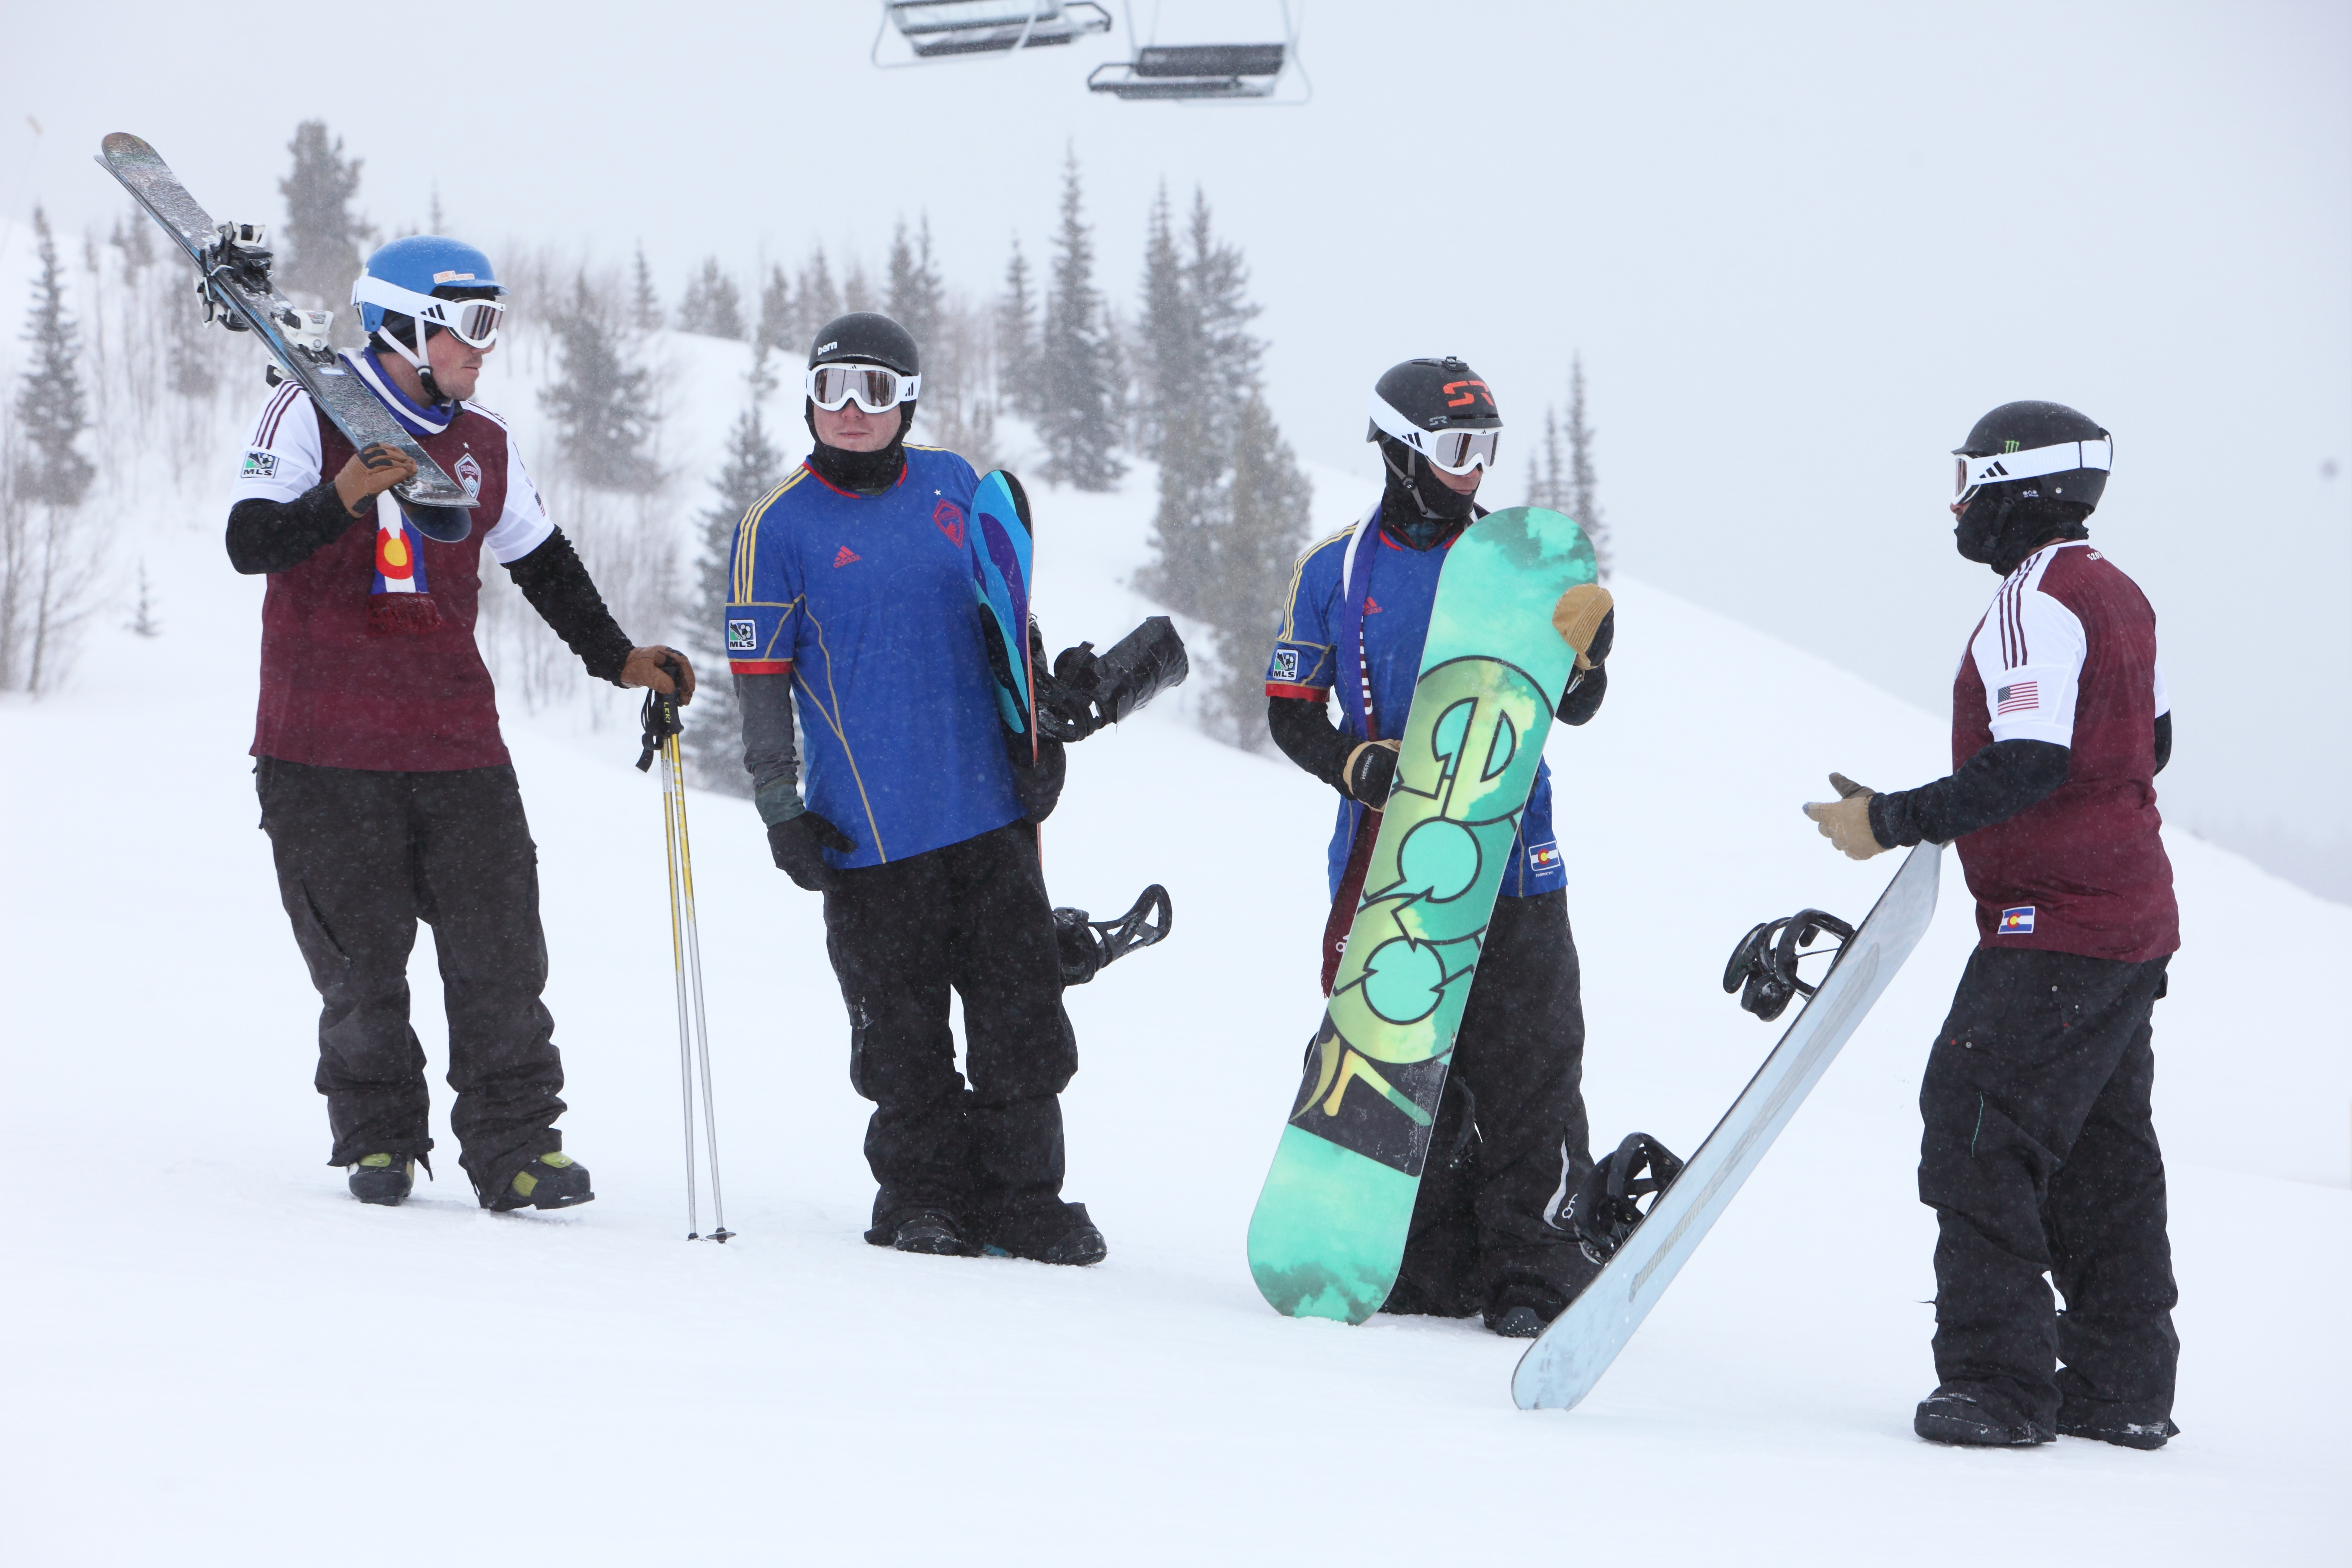 Snowboarders wearing Rapids jerseys